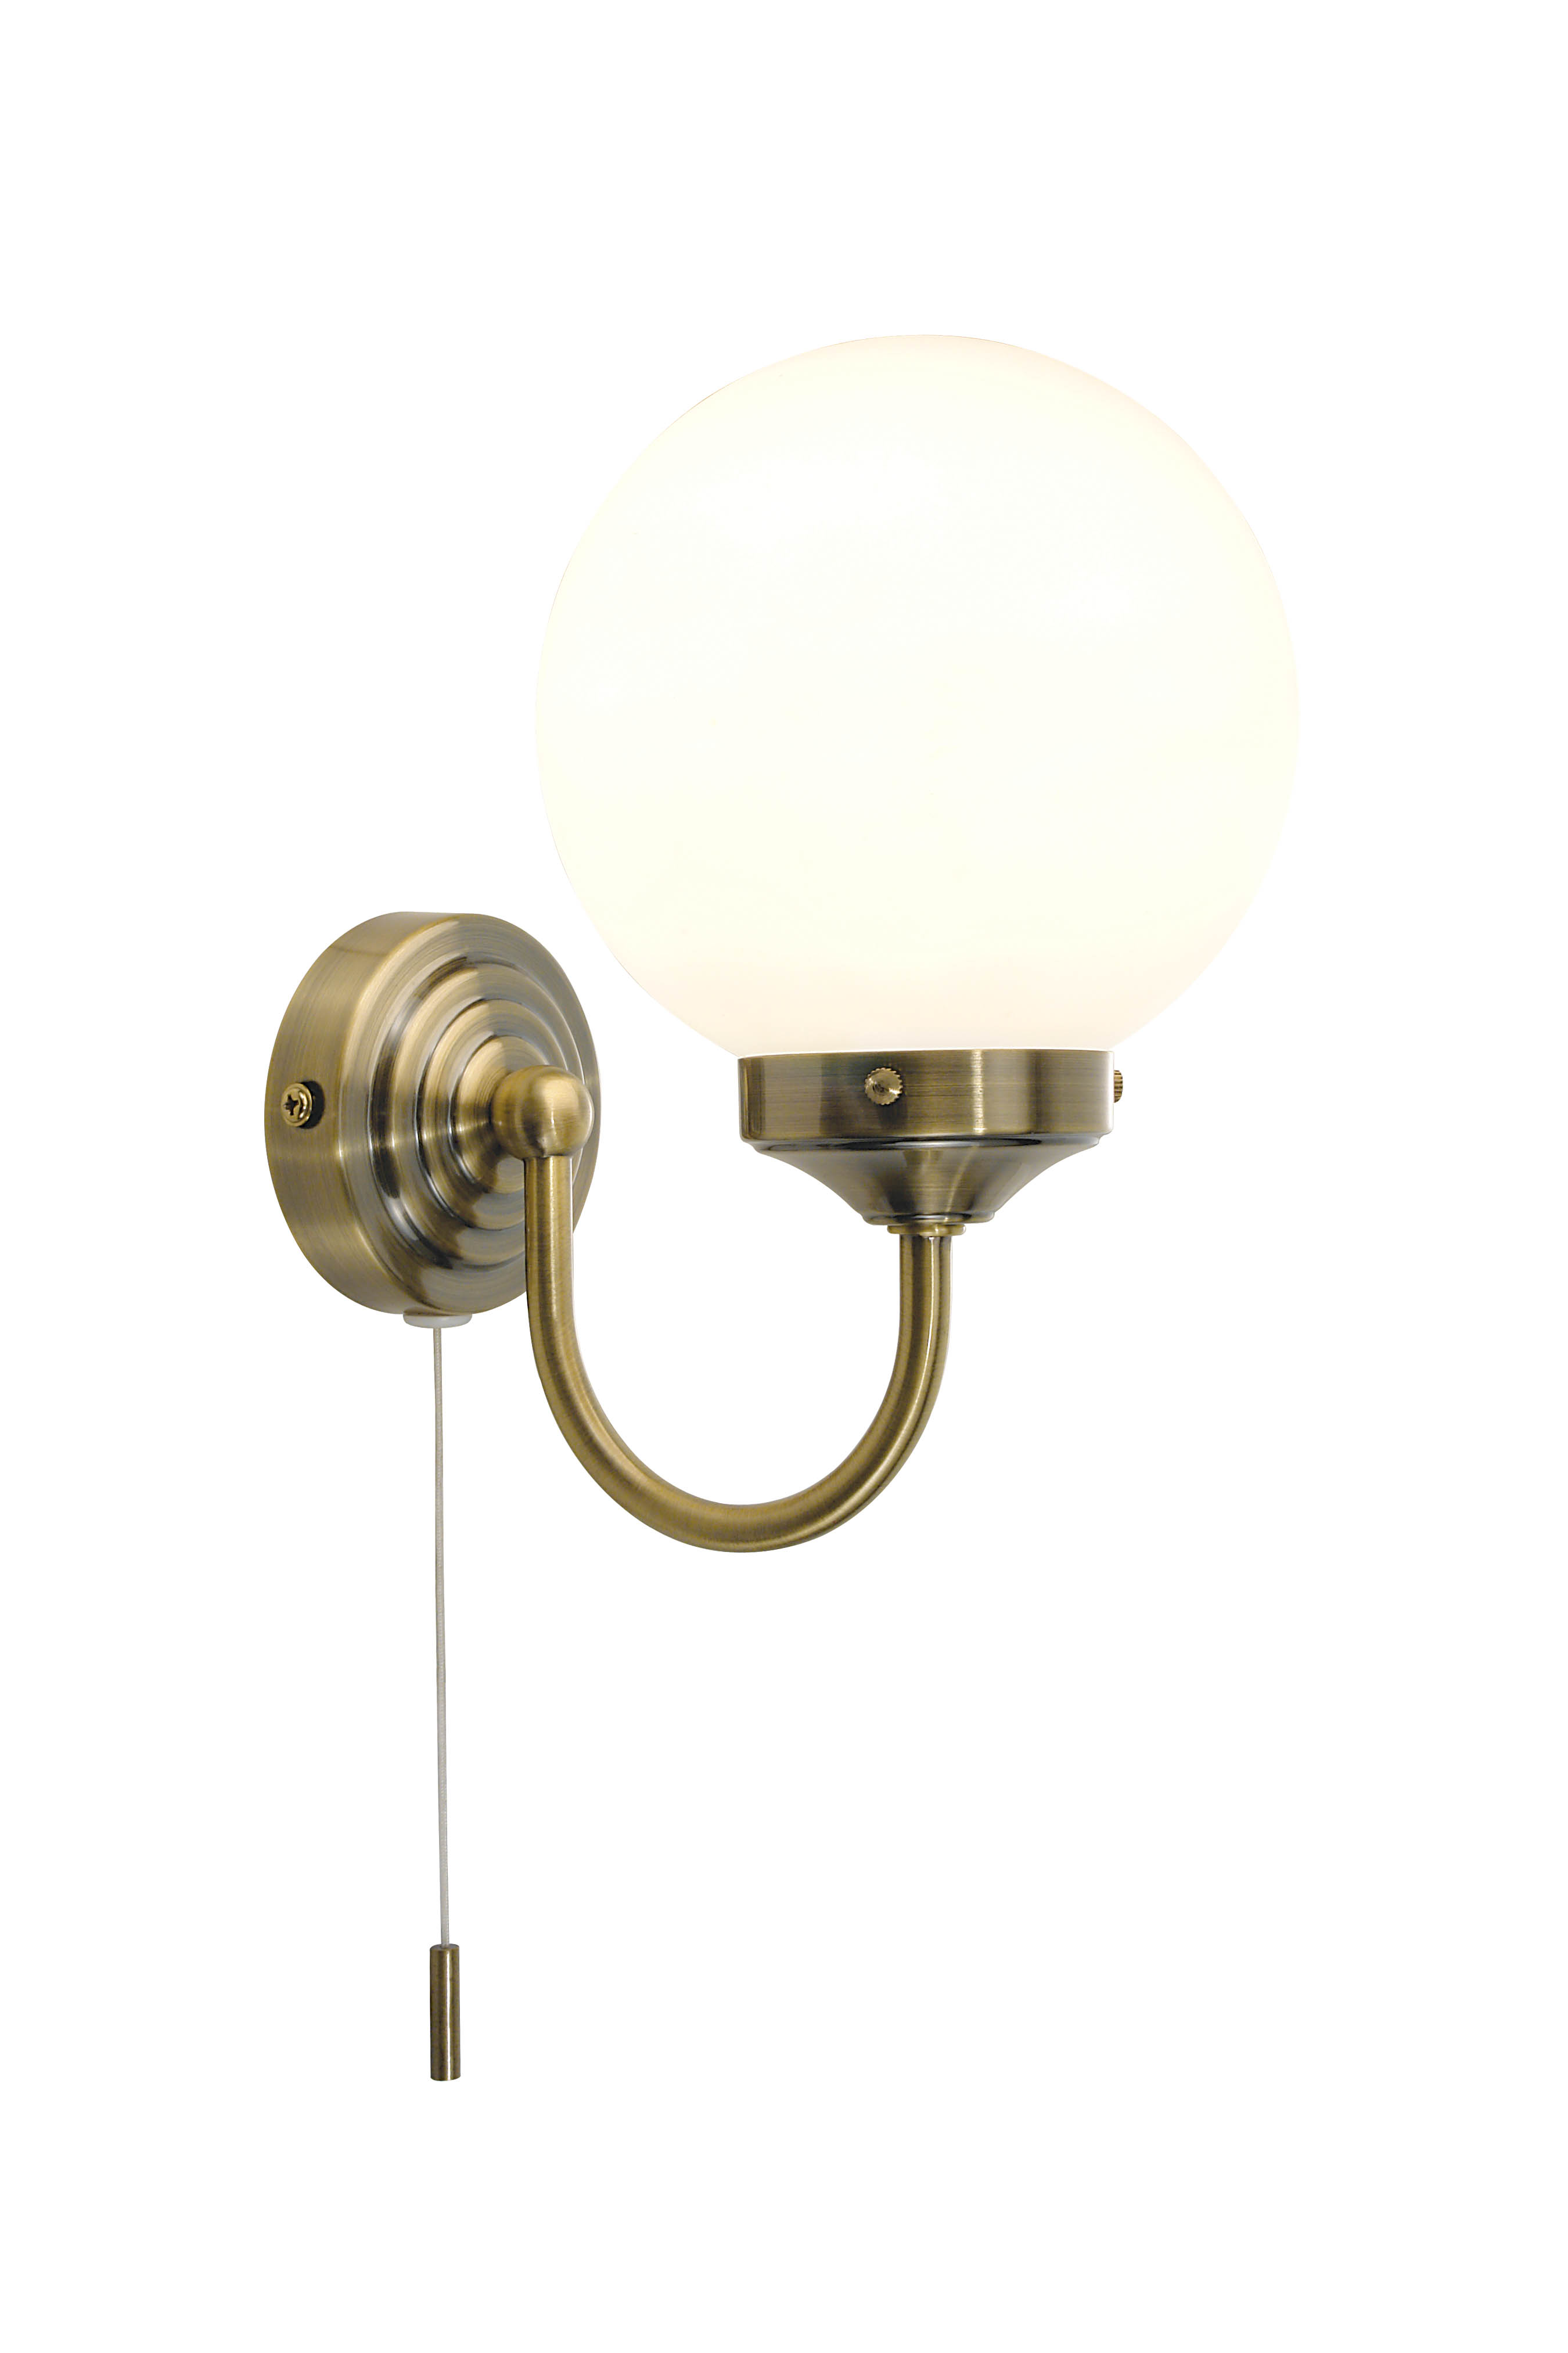 Surprising pull switch wall lights contemporary best image engine antique brass 40w ip44 wall light with pull cord switch aloadofball Image collections